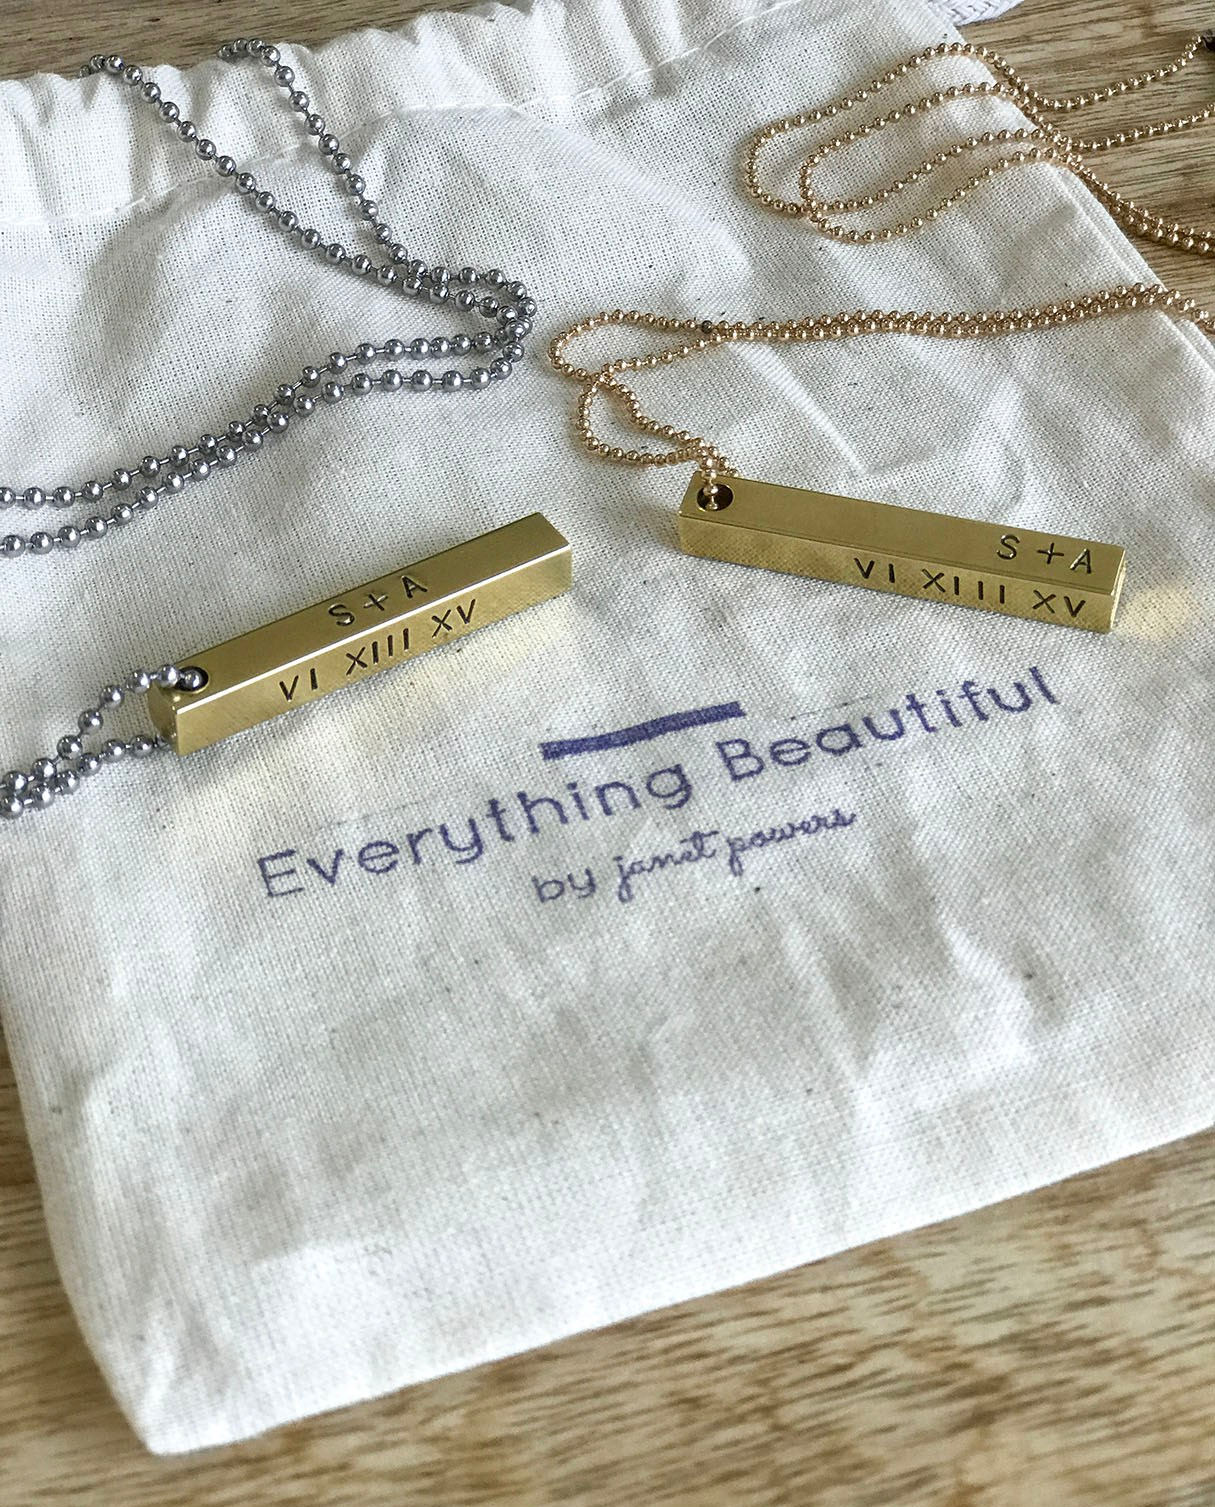 Everything-Beautiful-Vday-gifts.jpg